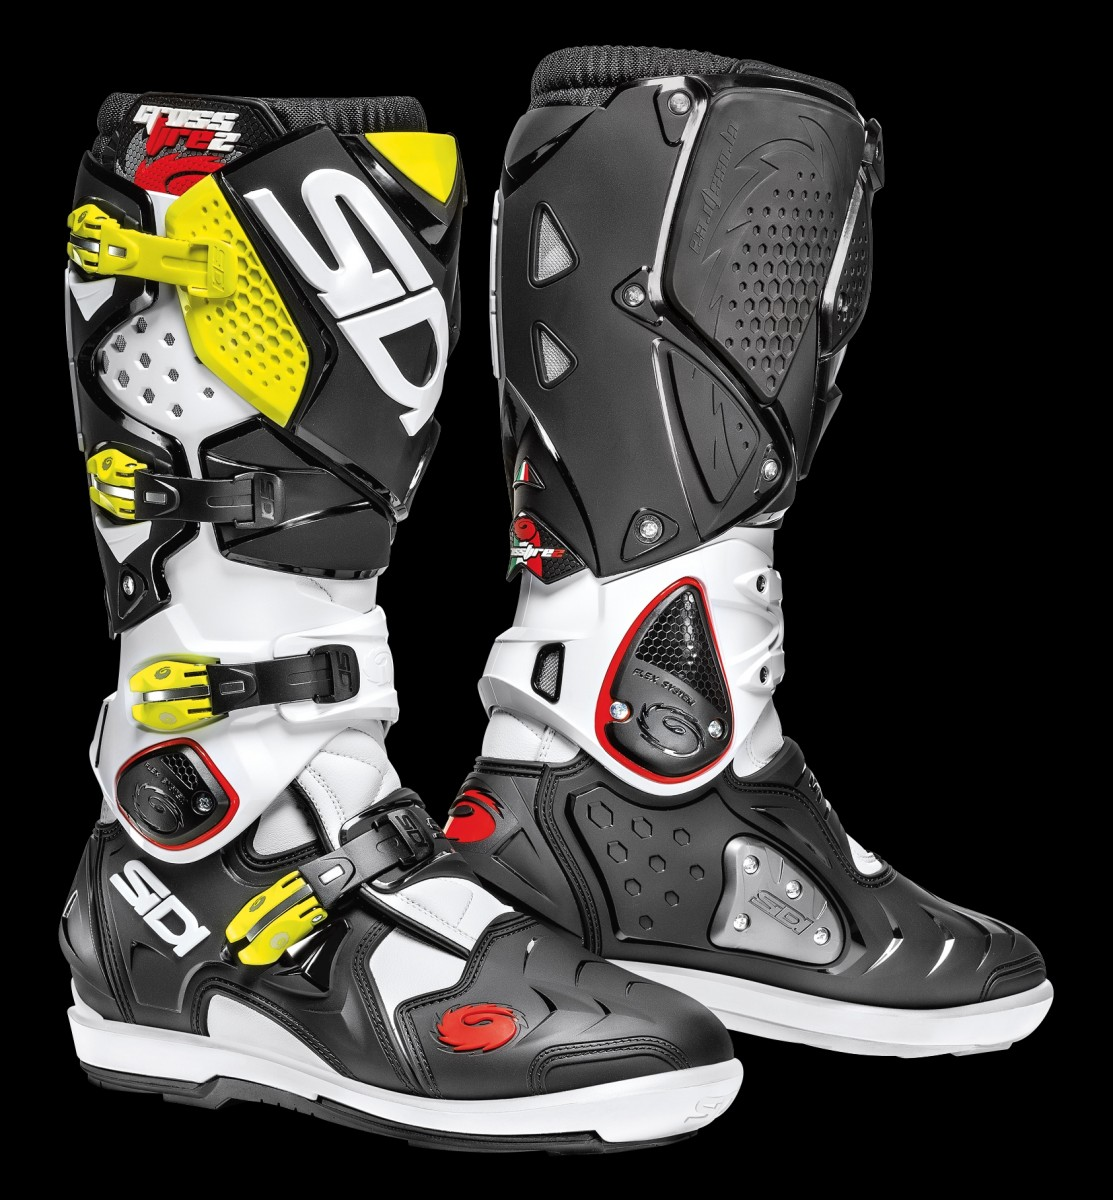 sidi off road boots crossfire 2 srs white black yellow fluo. Black Bedroom Furniture Sets. Home Design Ideas